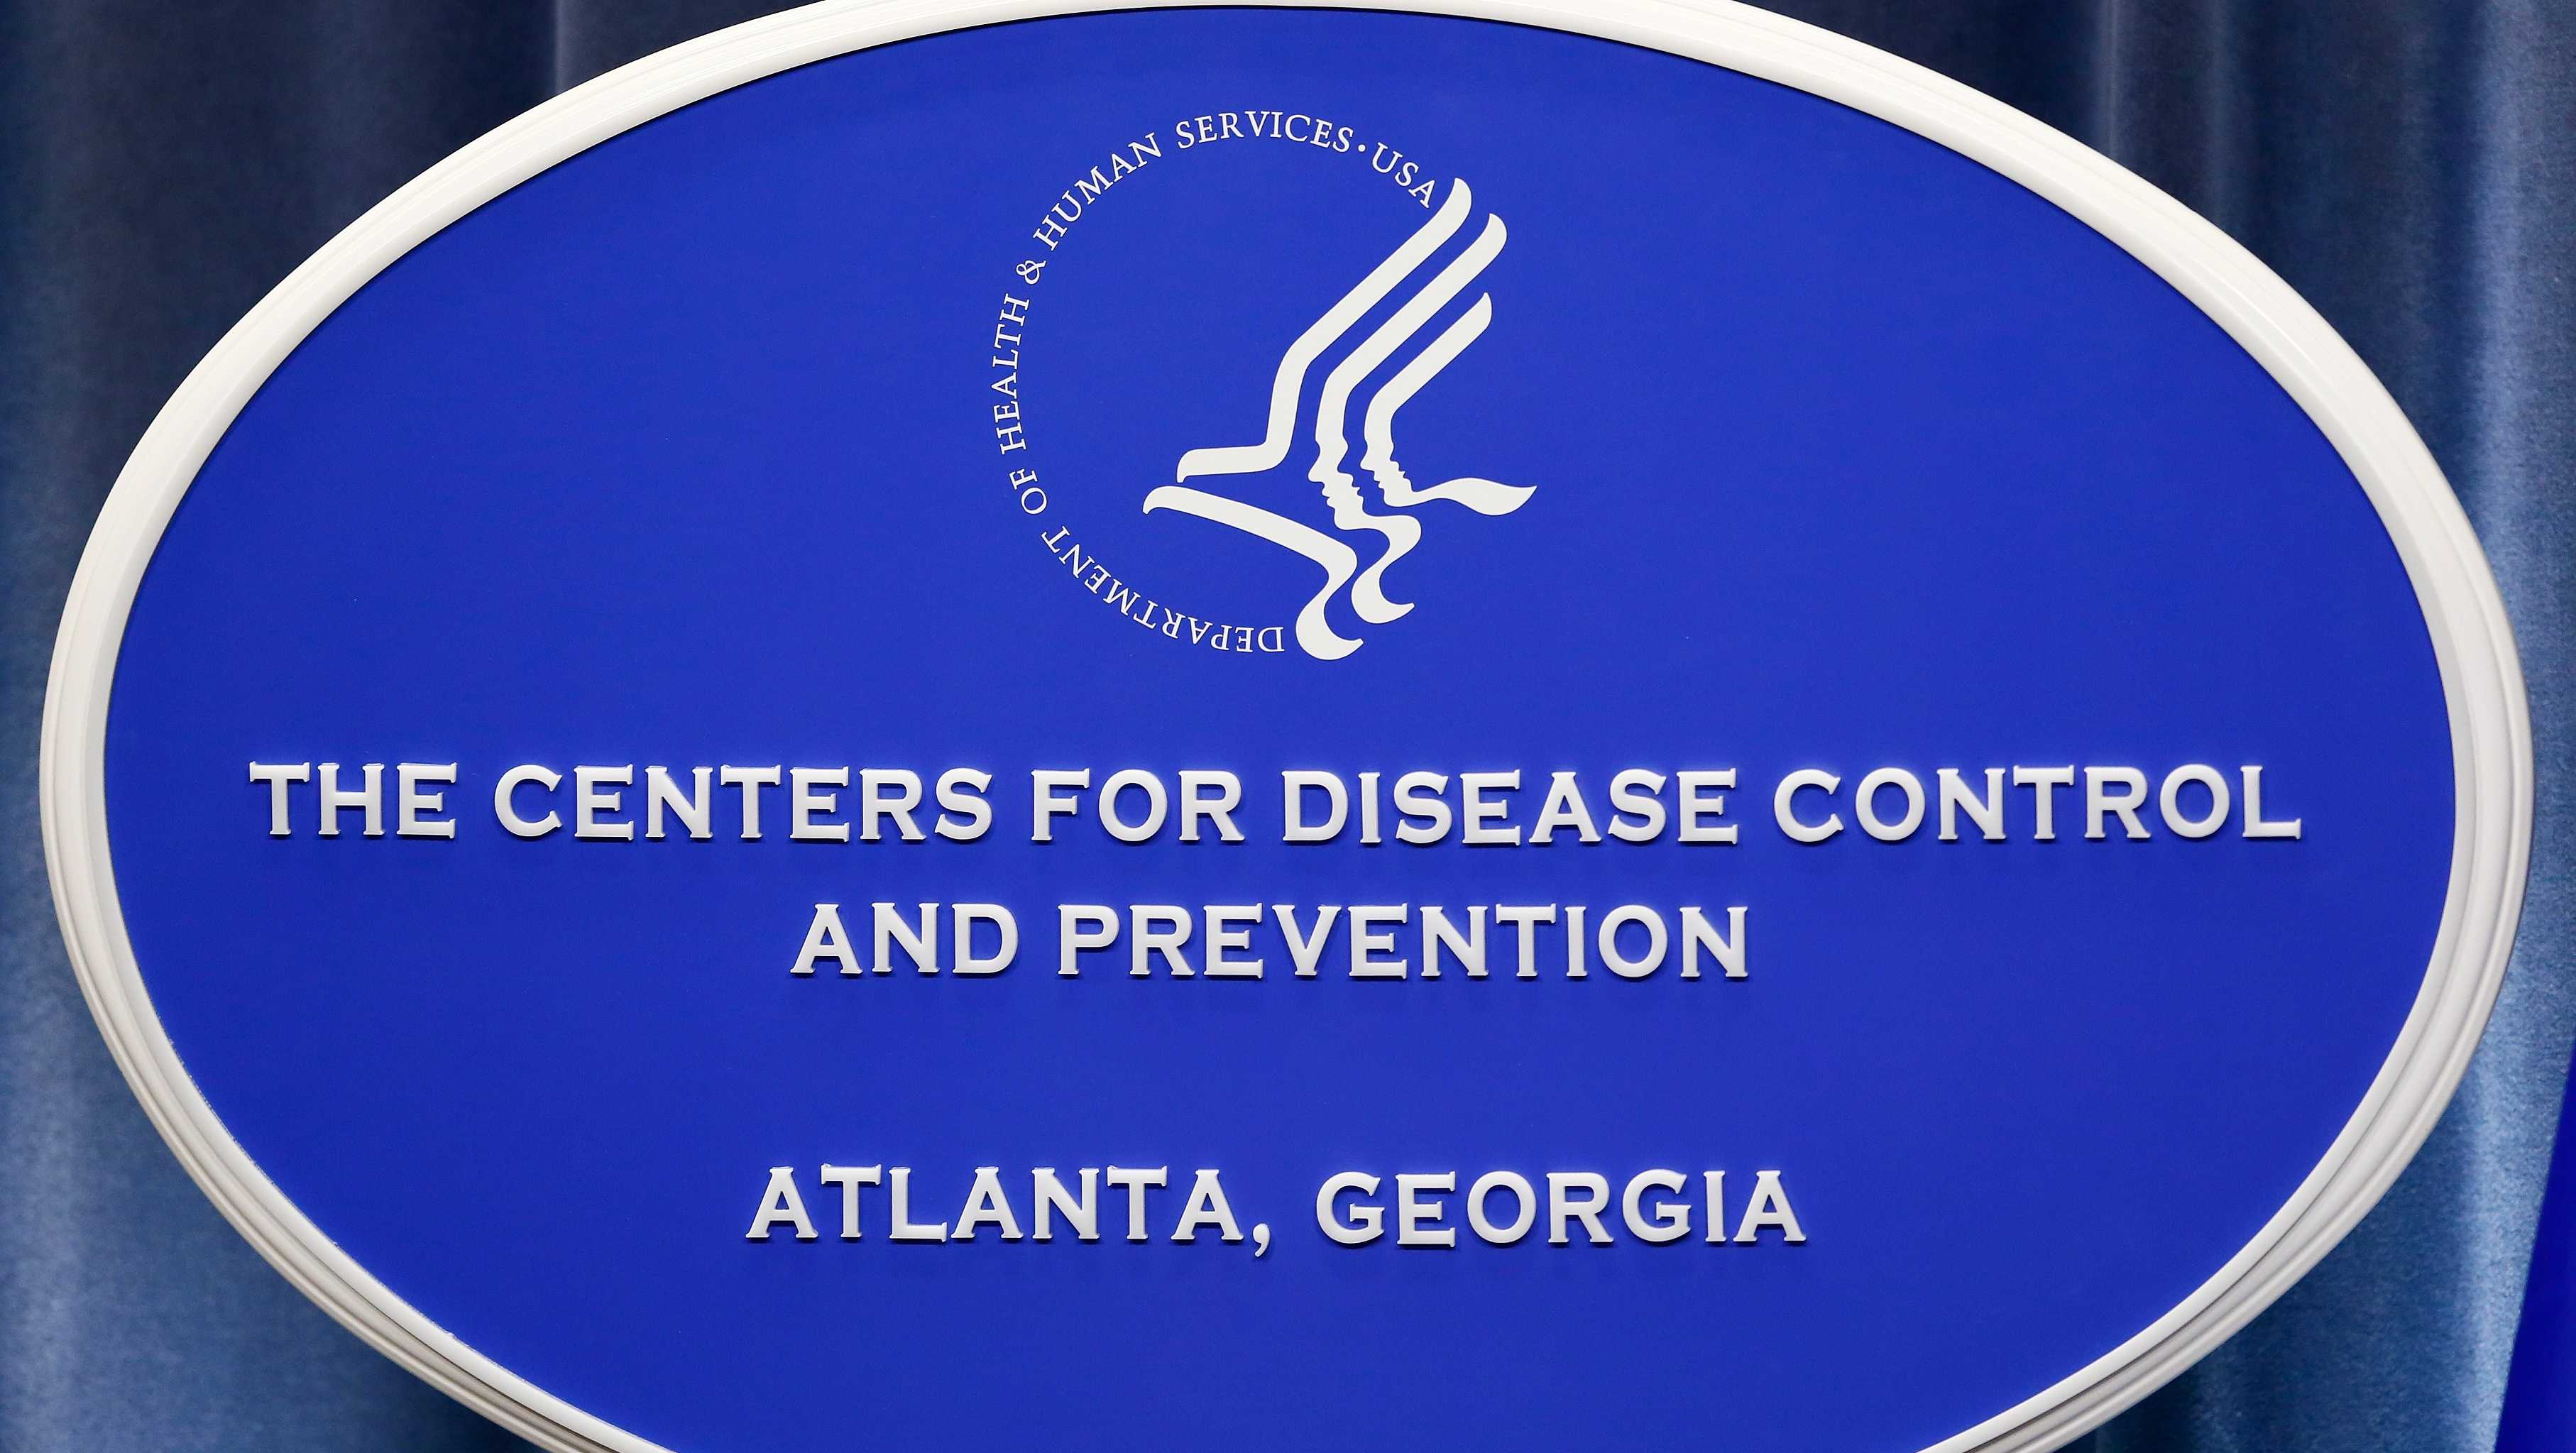 A sign with the logo for the Centers for Disease Control and Prevention at the Tom Harkin Global Communications Center on October 5, 2014 in Atlanta, Georgia.